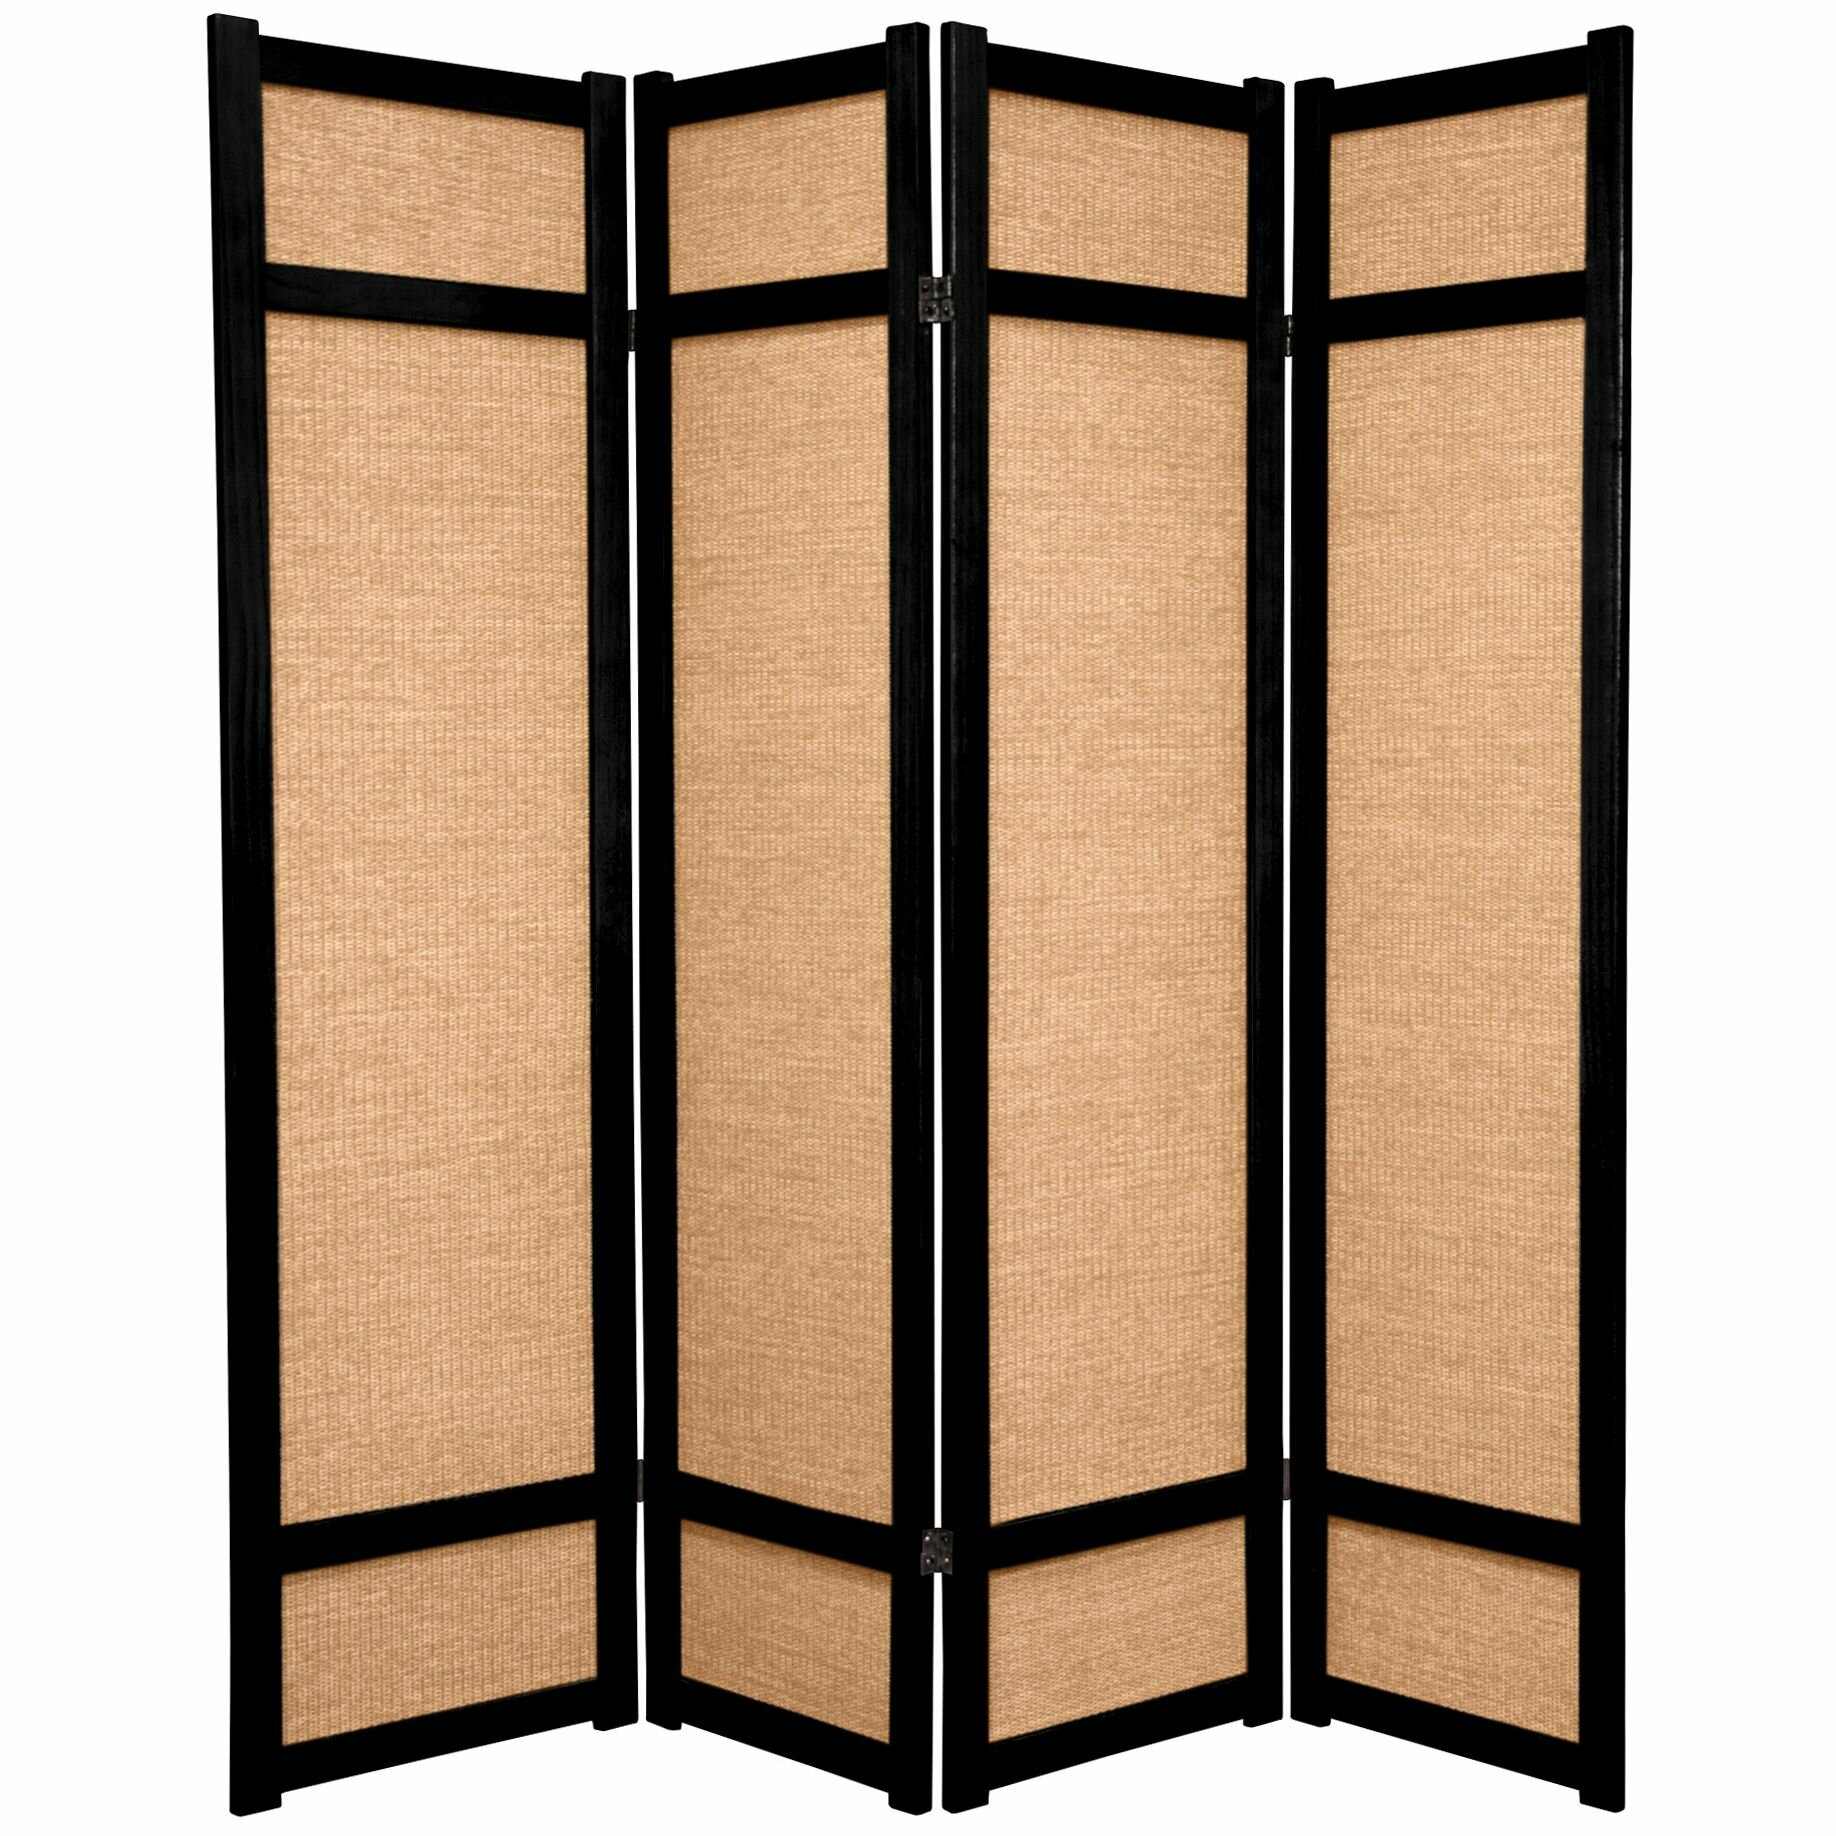 World Menagerie Clarke 68 W X 71 H 4 Panel Solid Wood Folding Room Divider Reviews Wayfair